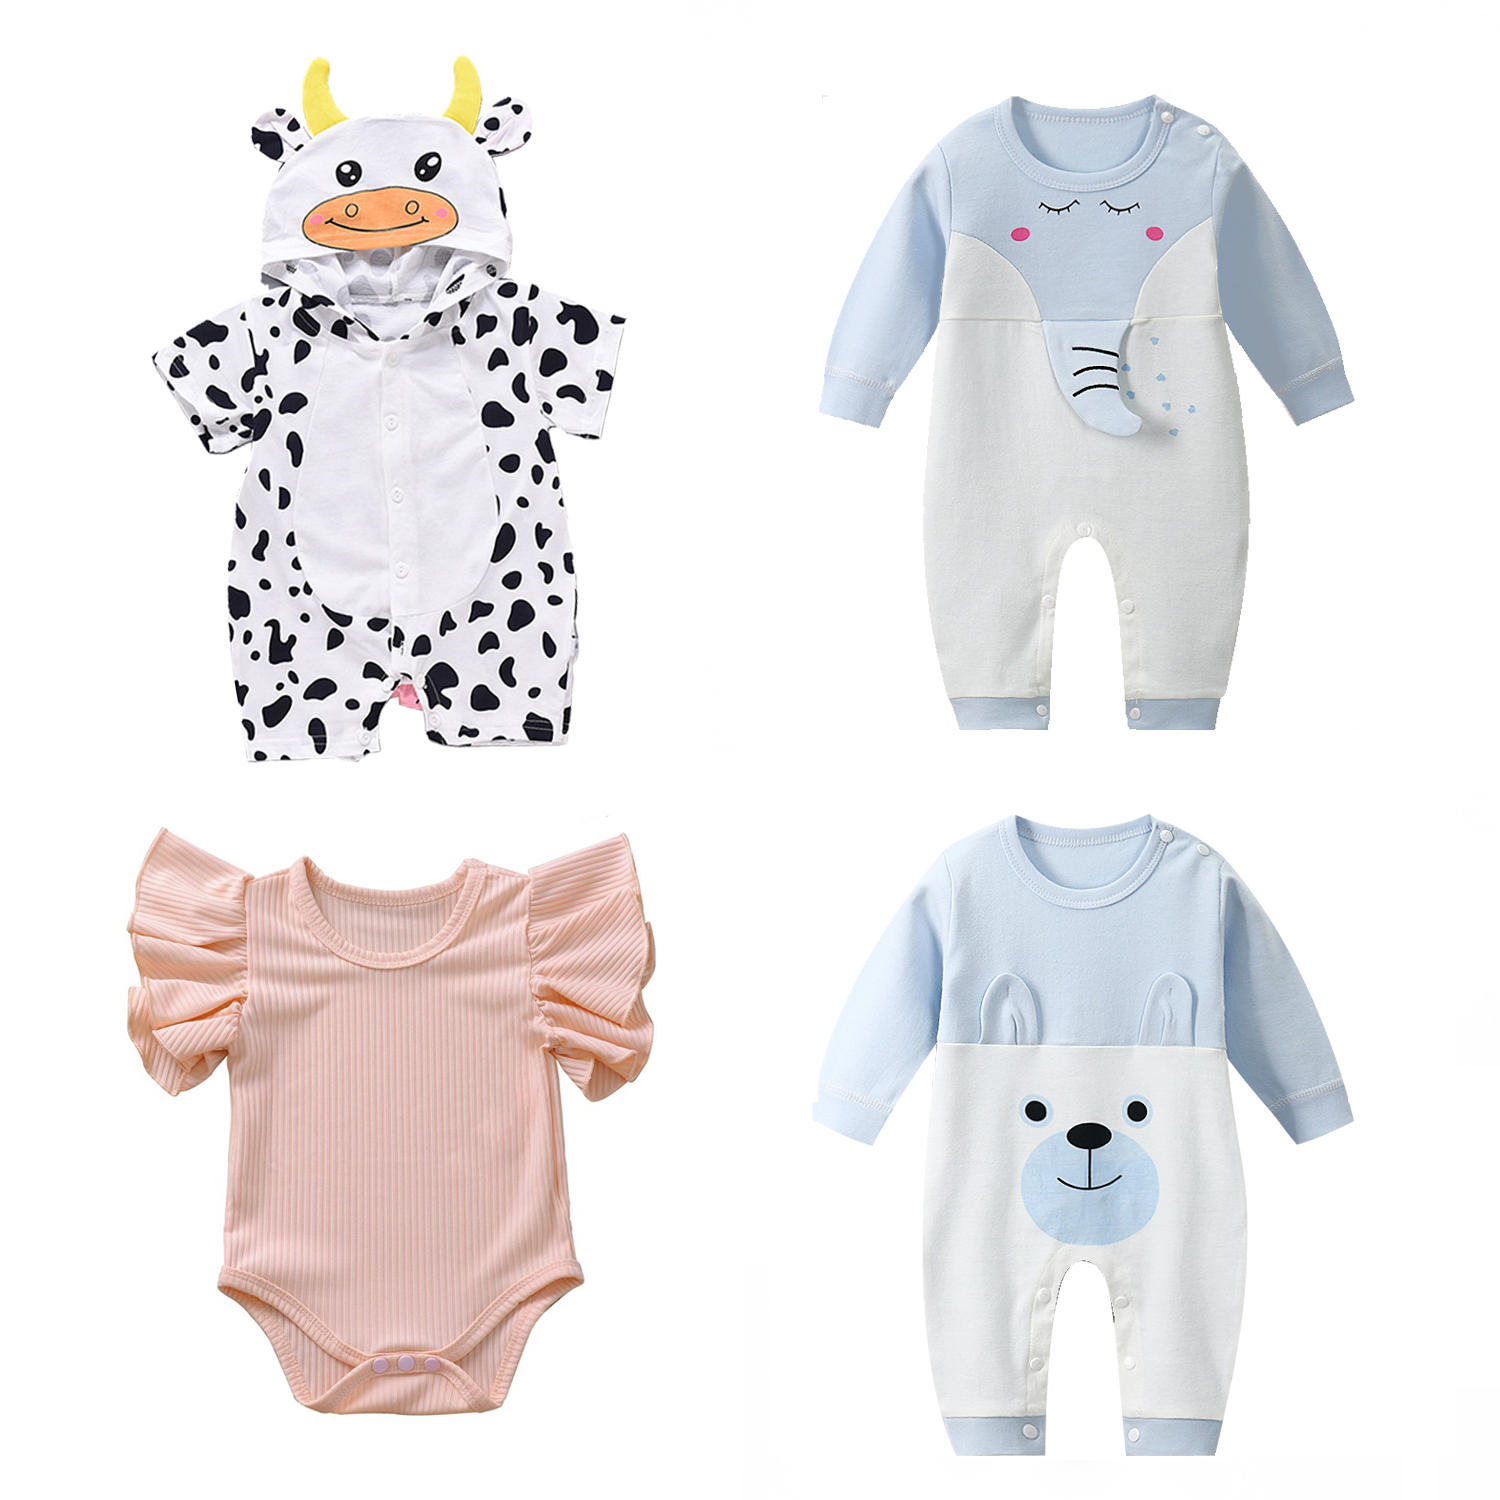 Infant Jumpsuit Summer Romper Animal Print Girl Boy Cotton Suit Newborn Climbing Cartoon Rompers Cheap Stuff Baby Products